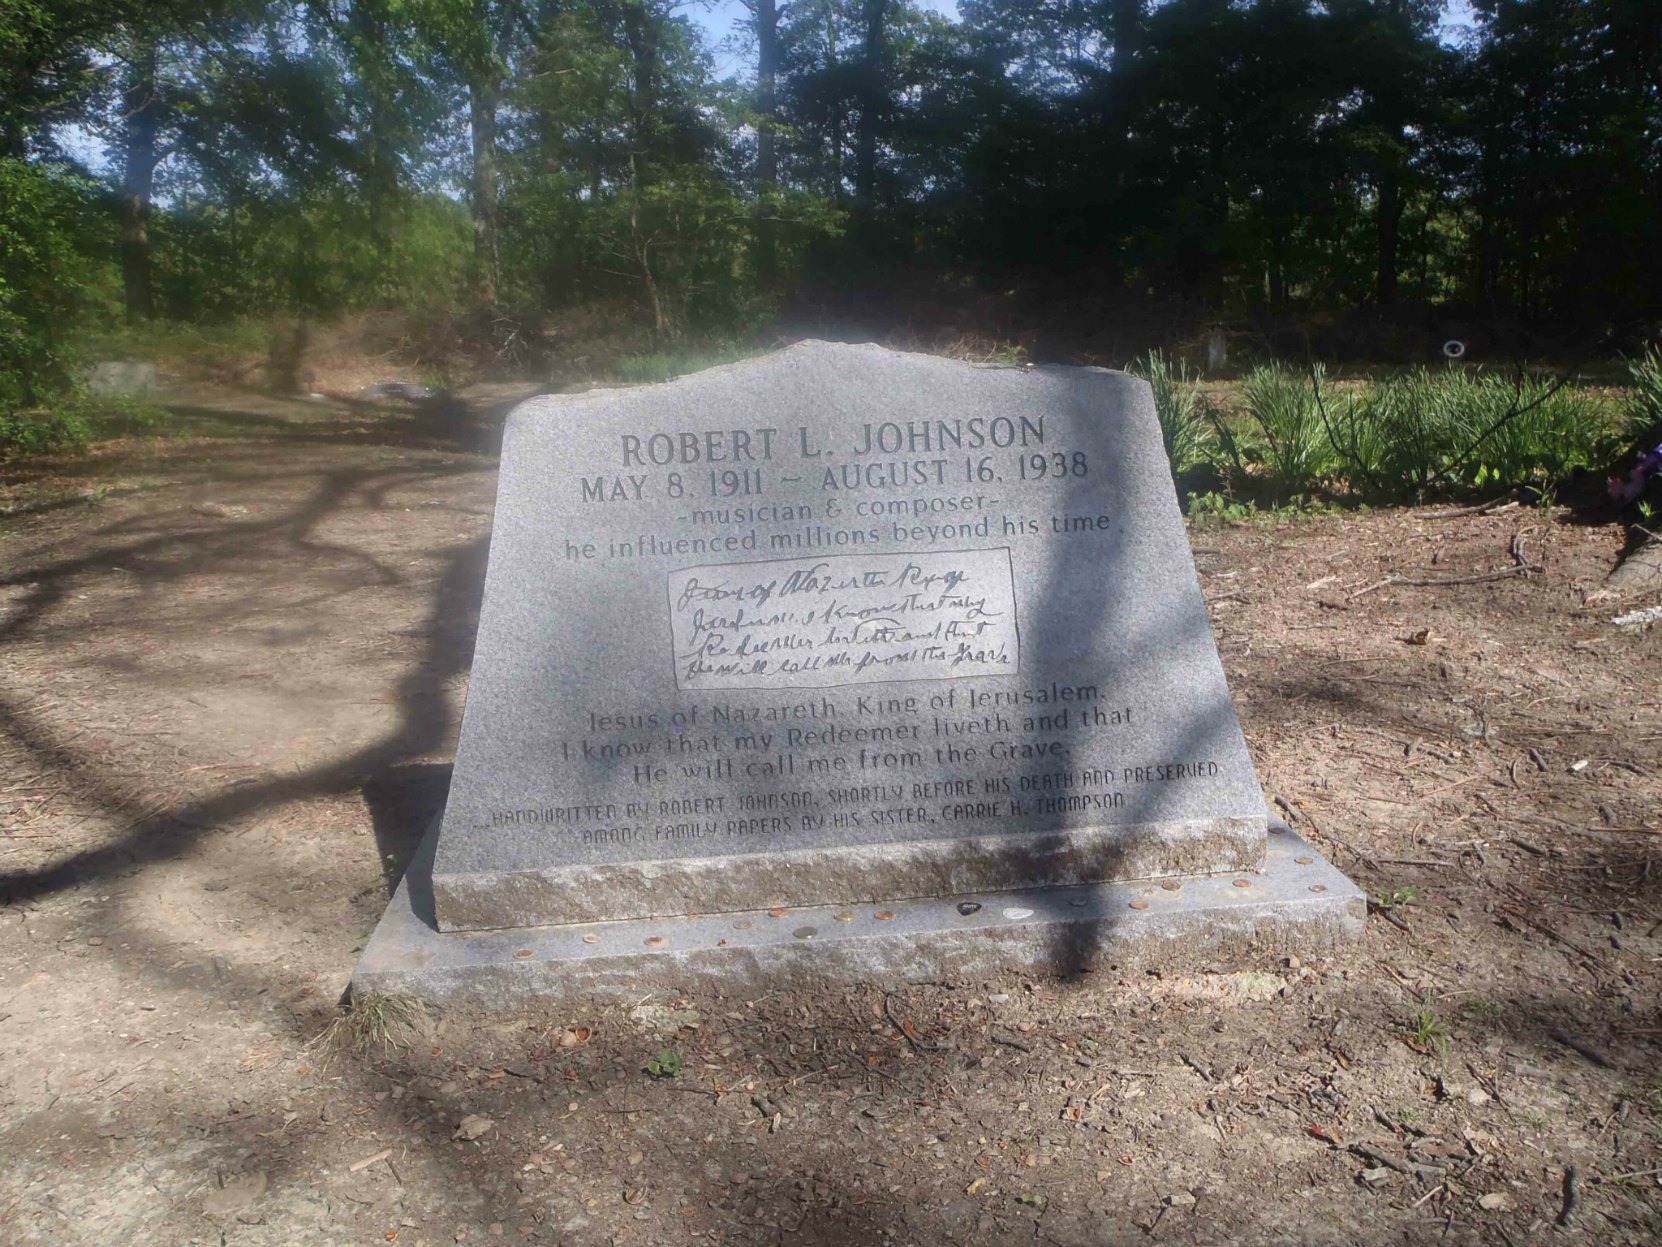 Robert Johnson grave in Little Zion Missionary Baptist Church cemetery, near Money, Leflore County, Mississippi, site of one of three reputed Robert Johnson grave sites.